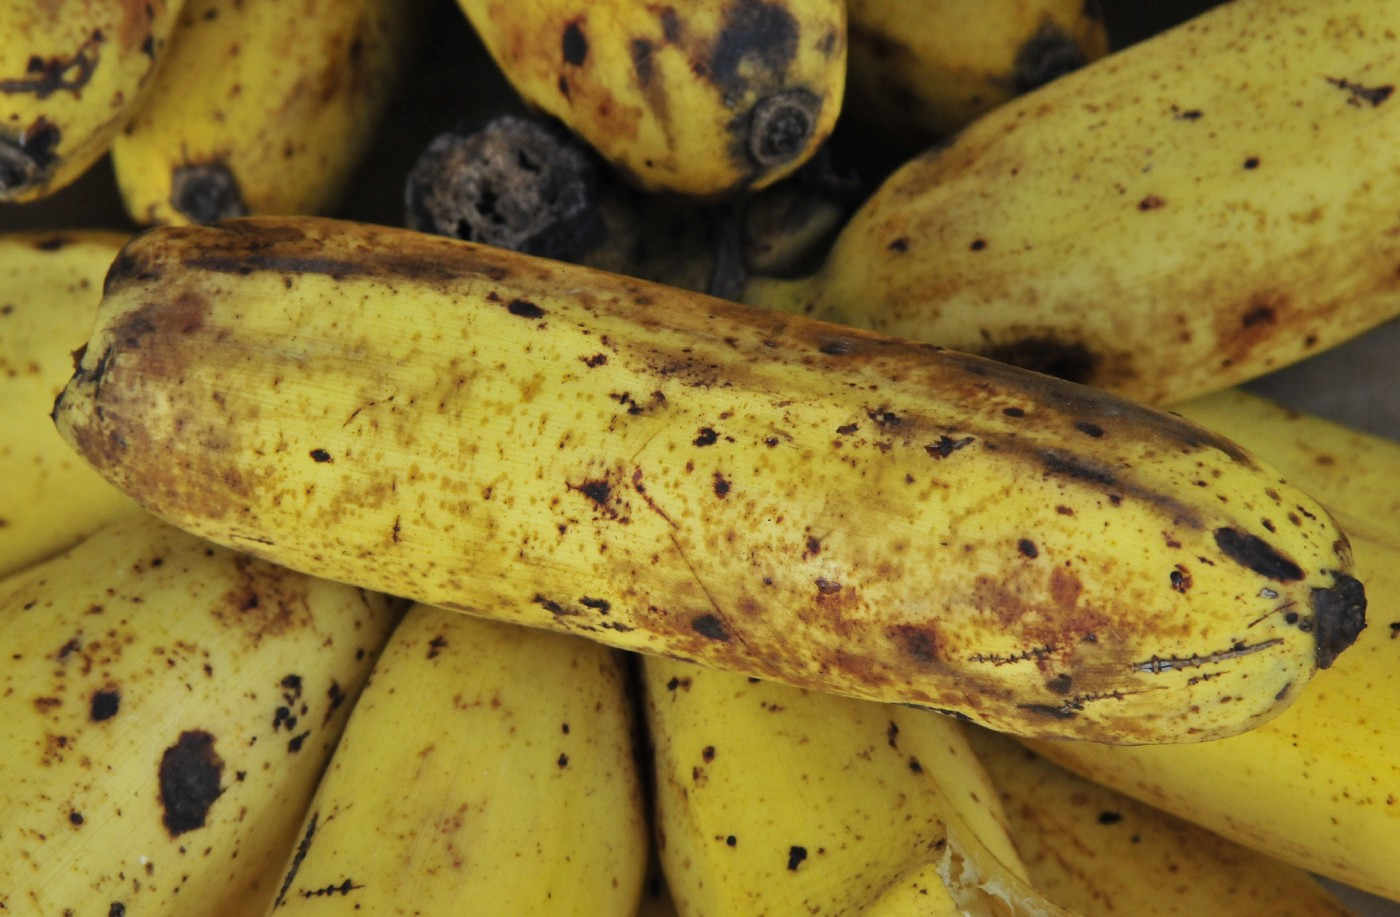 Close-up of a pile of blemished yellow bananas